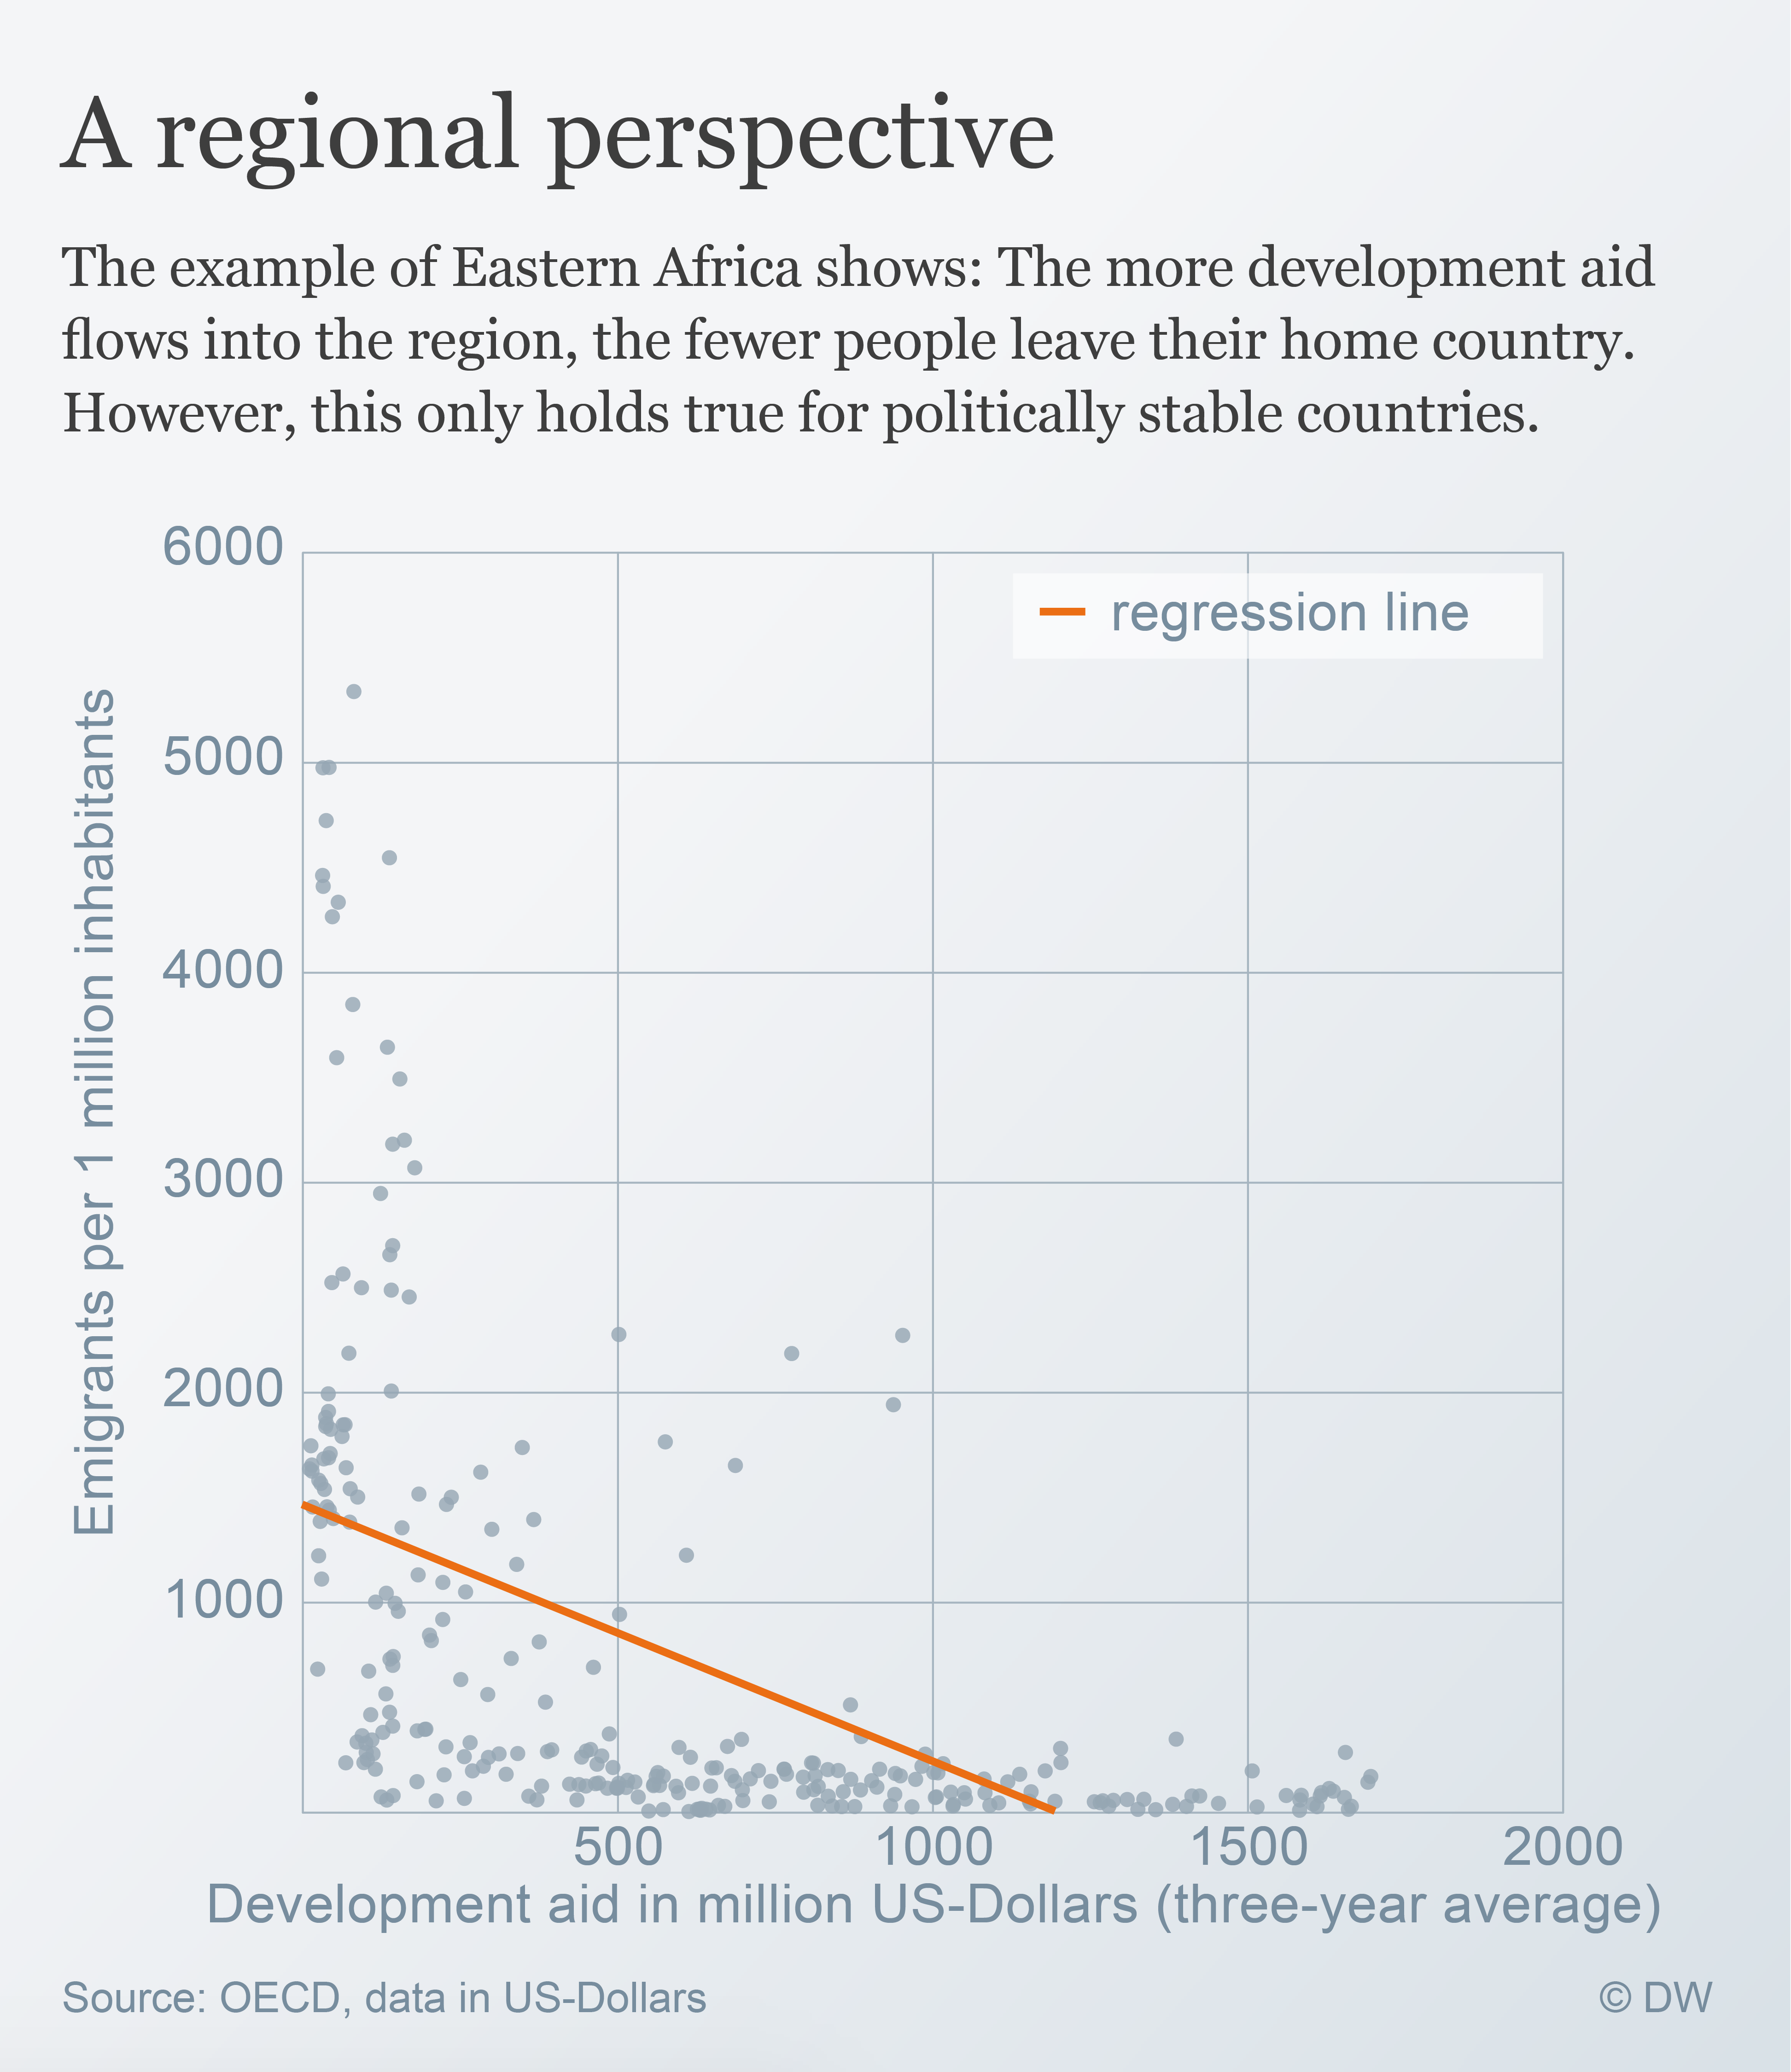 Data visualisation: Emigration and Development Aid in Eastern Africa